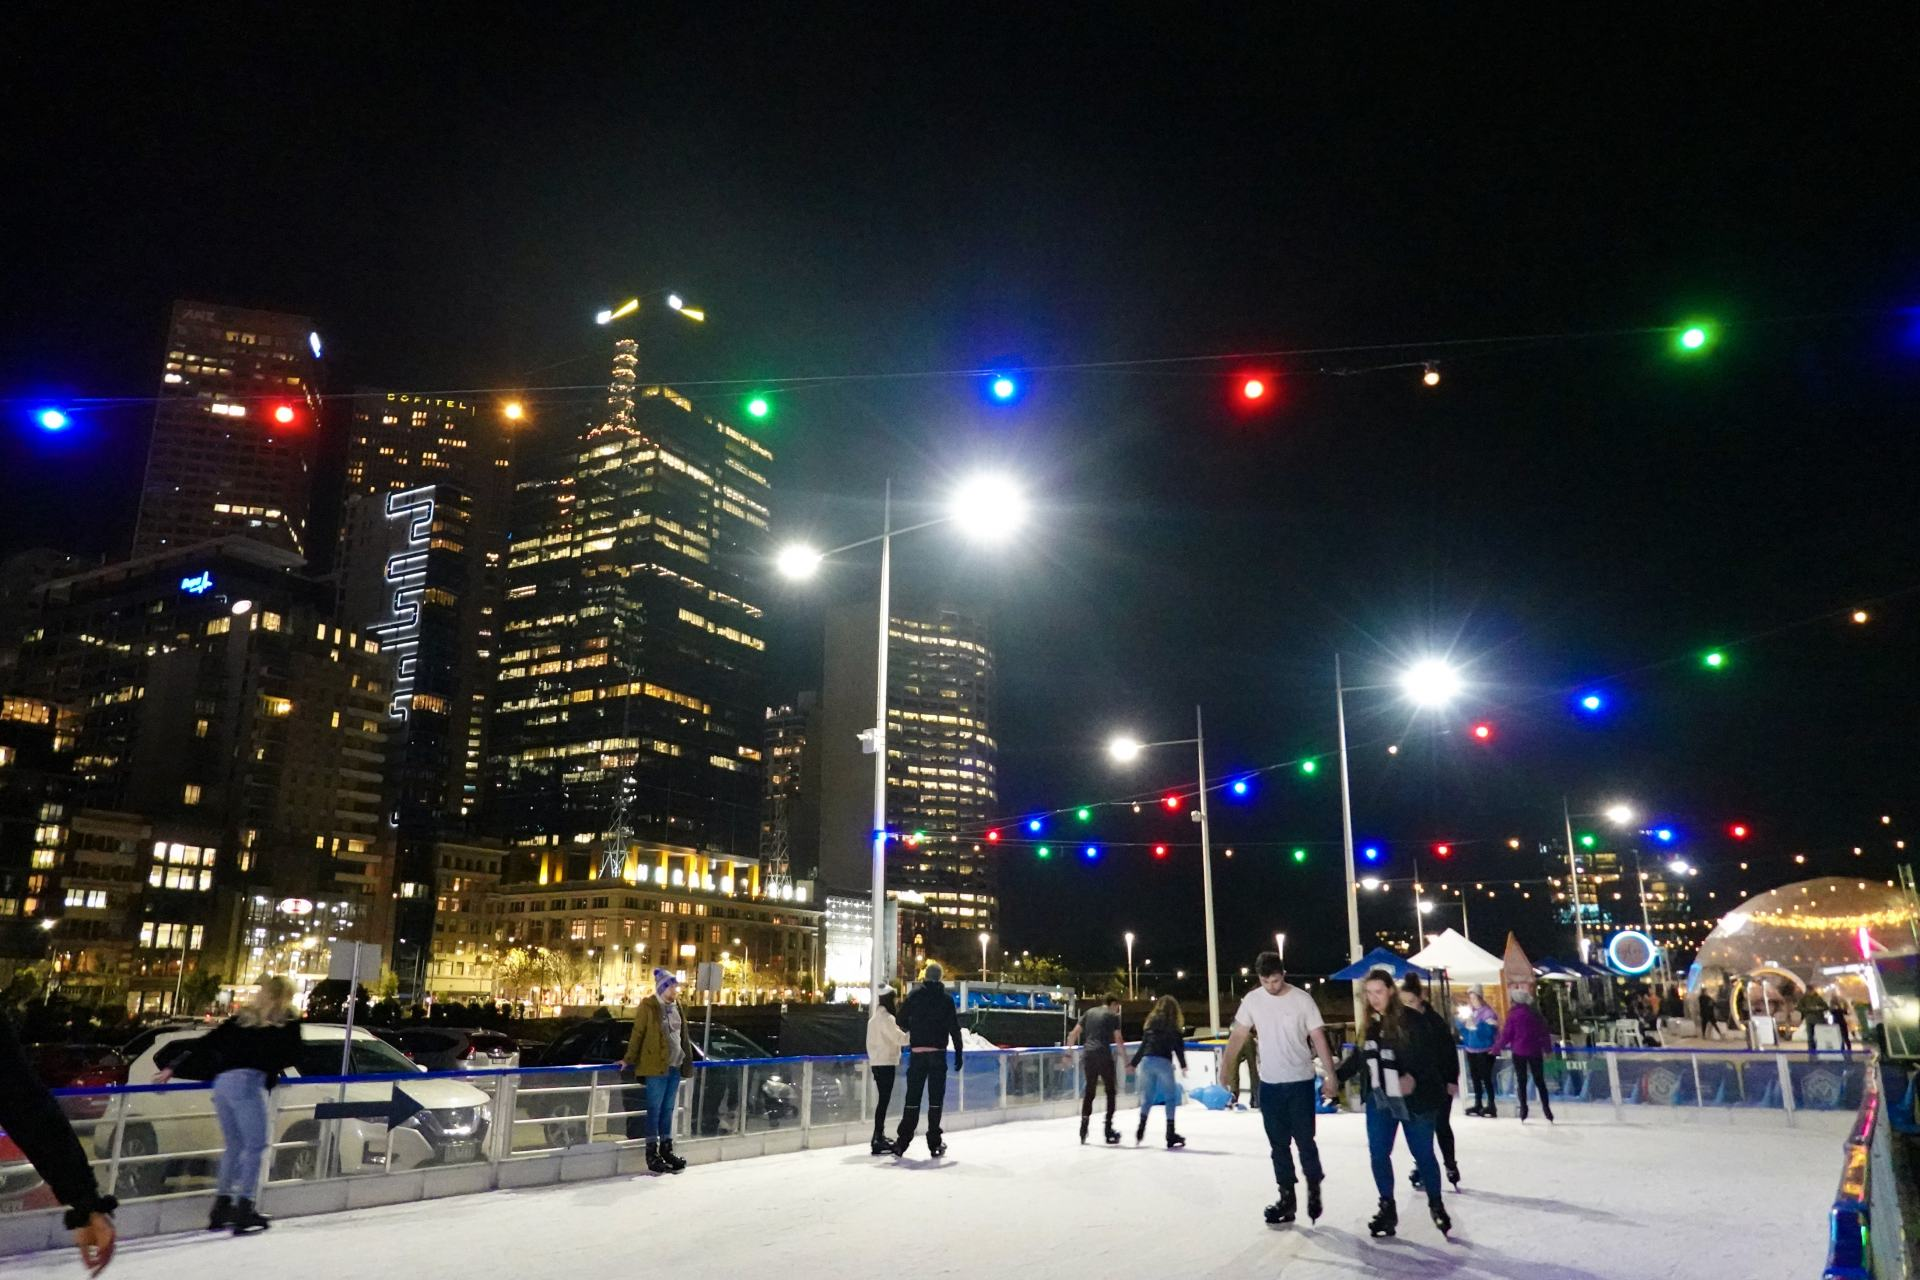 ice-skating rink melbourne